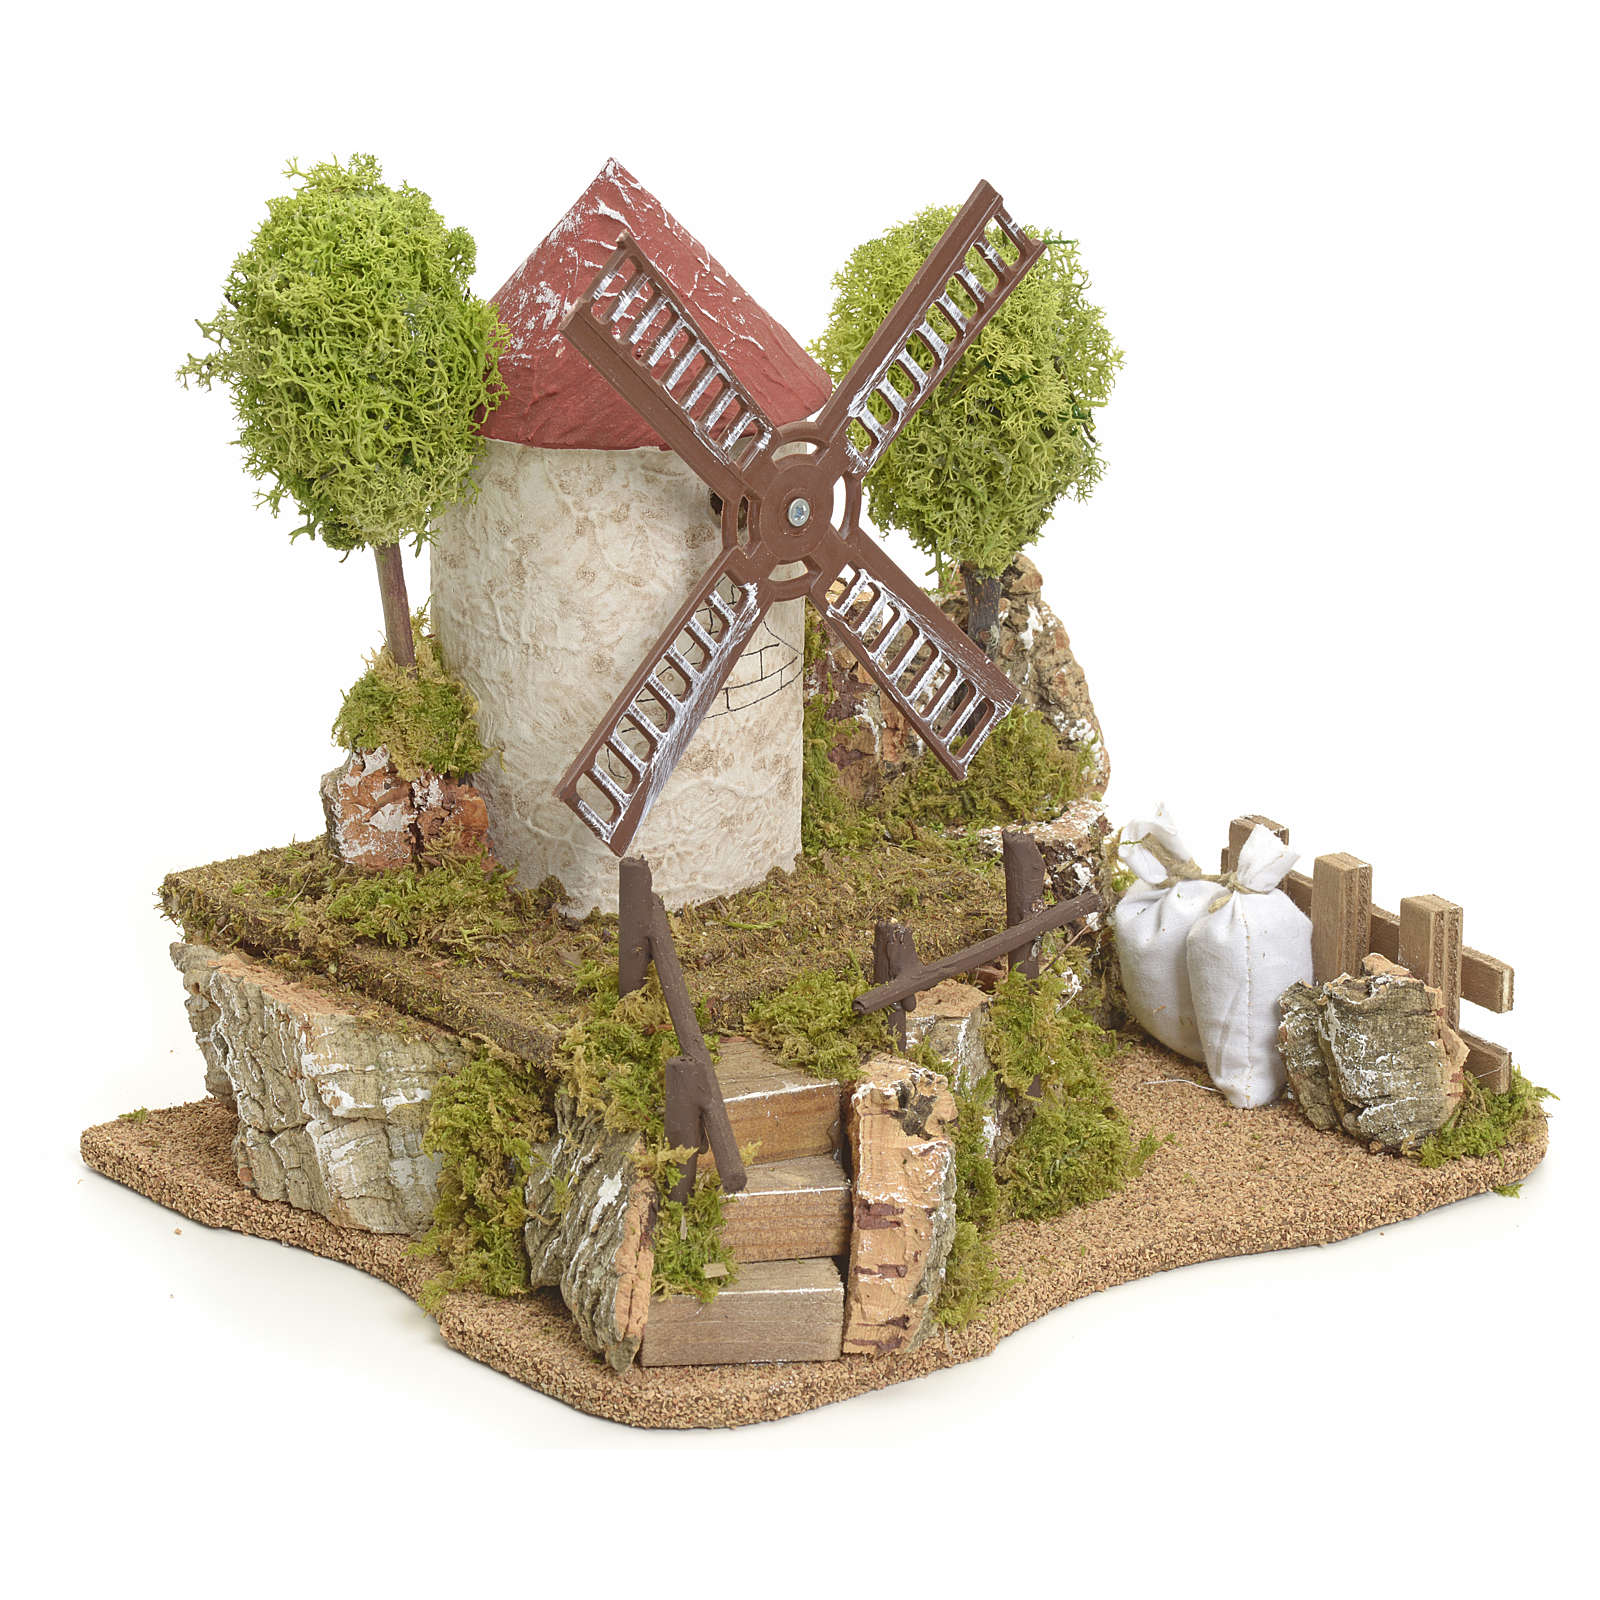 Electric wind mill with trees, Nativity setting 4